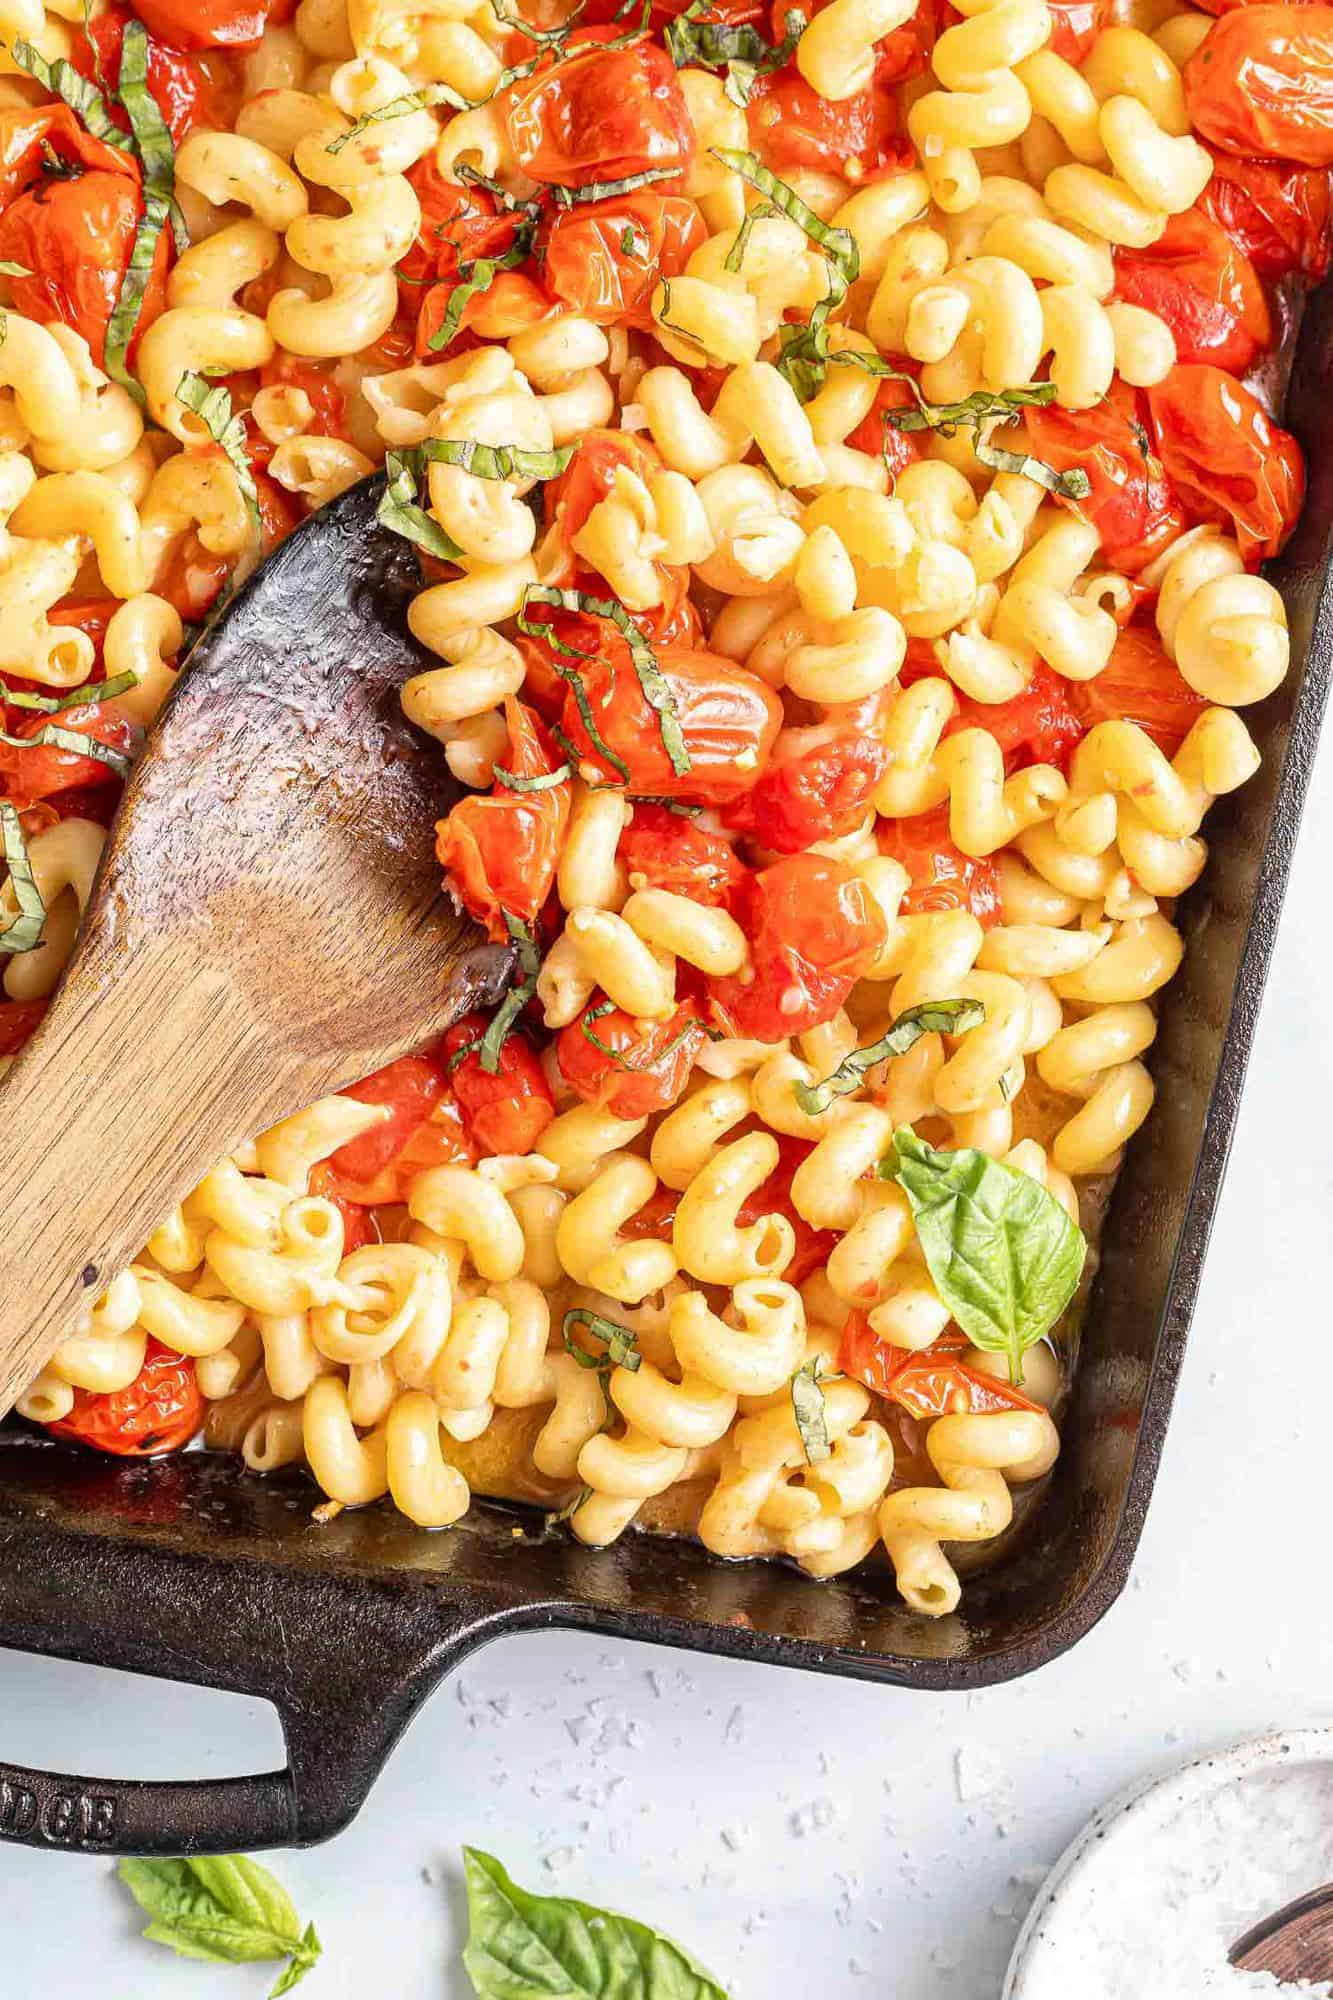 Pasta with tomatoes, basil, and feta cheese in a black baking dish.